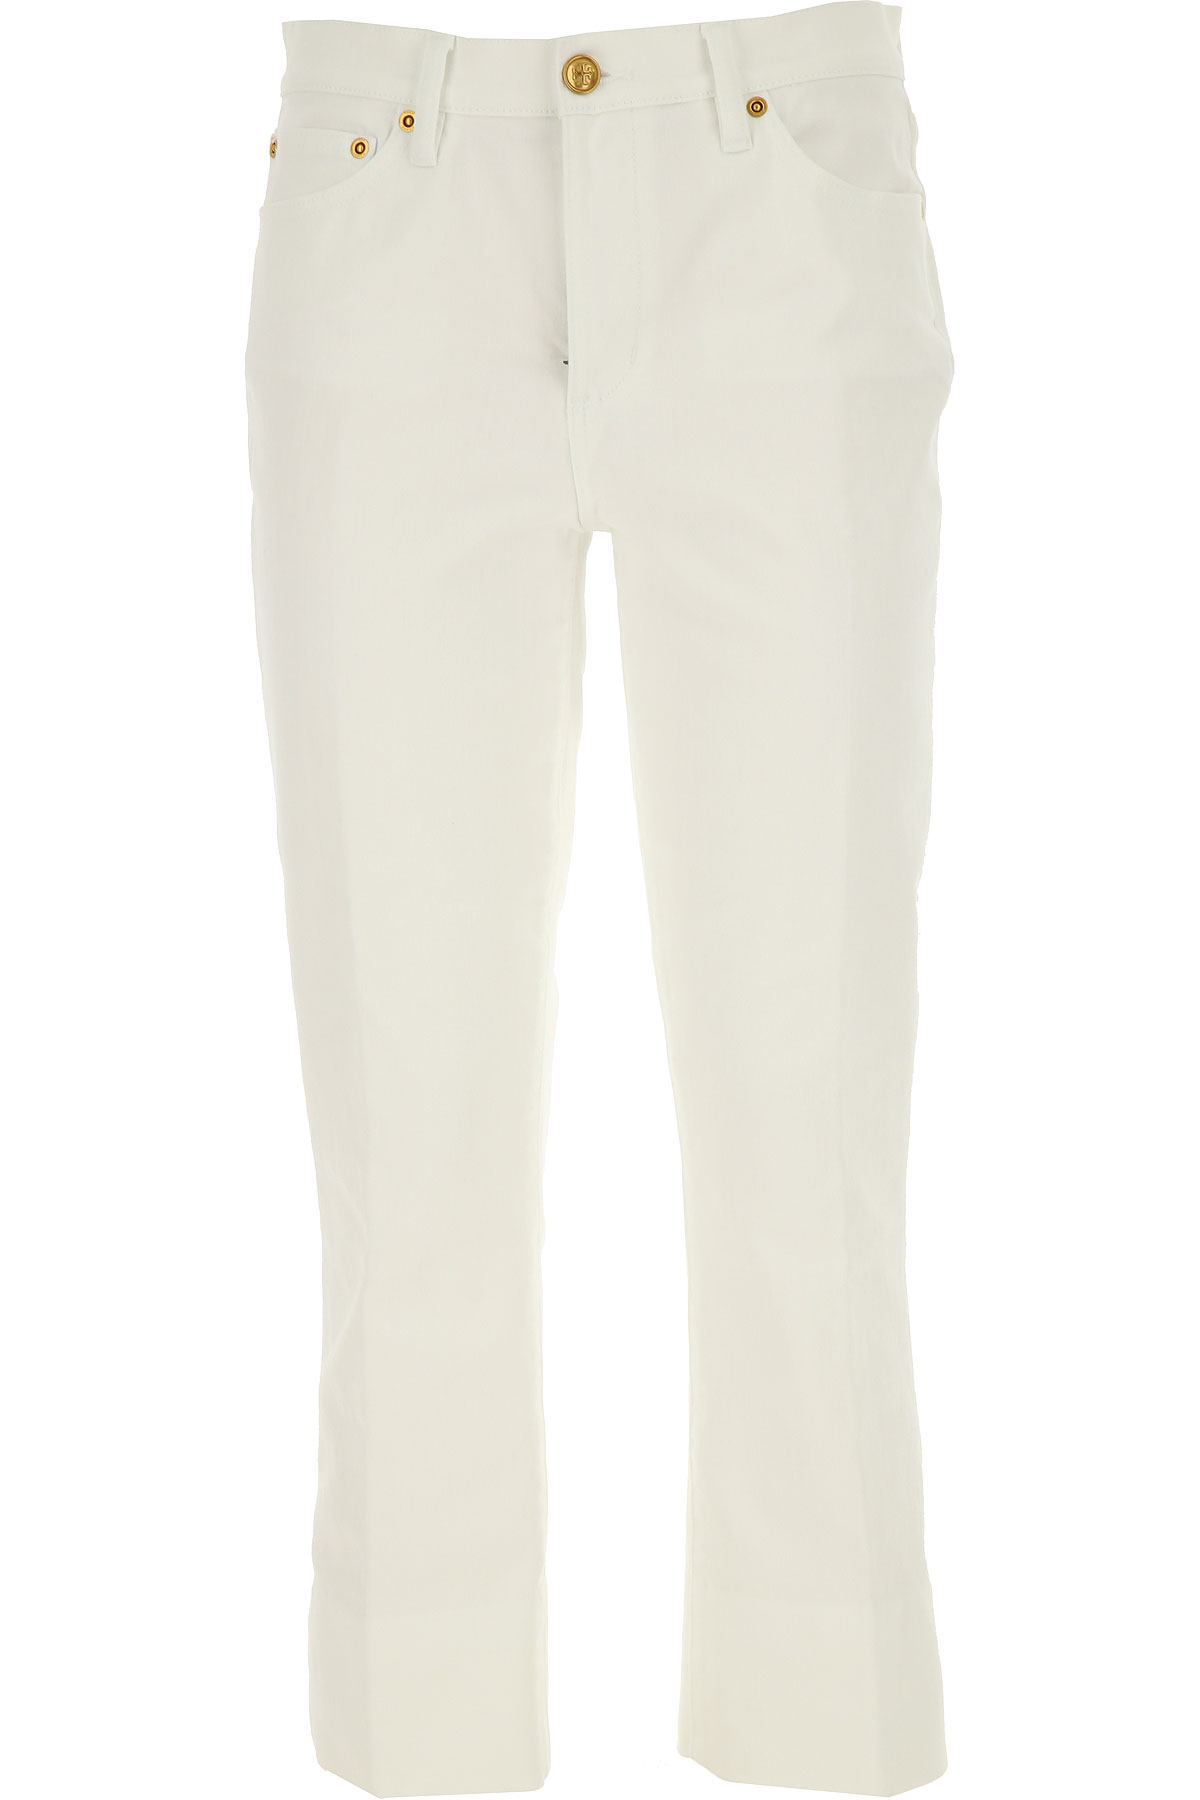 Tory Burch Jeans, White, Cotton, 2017, 26 27 28 29 30